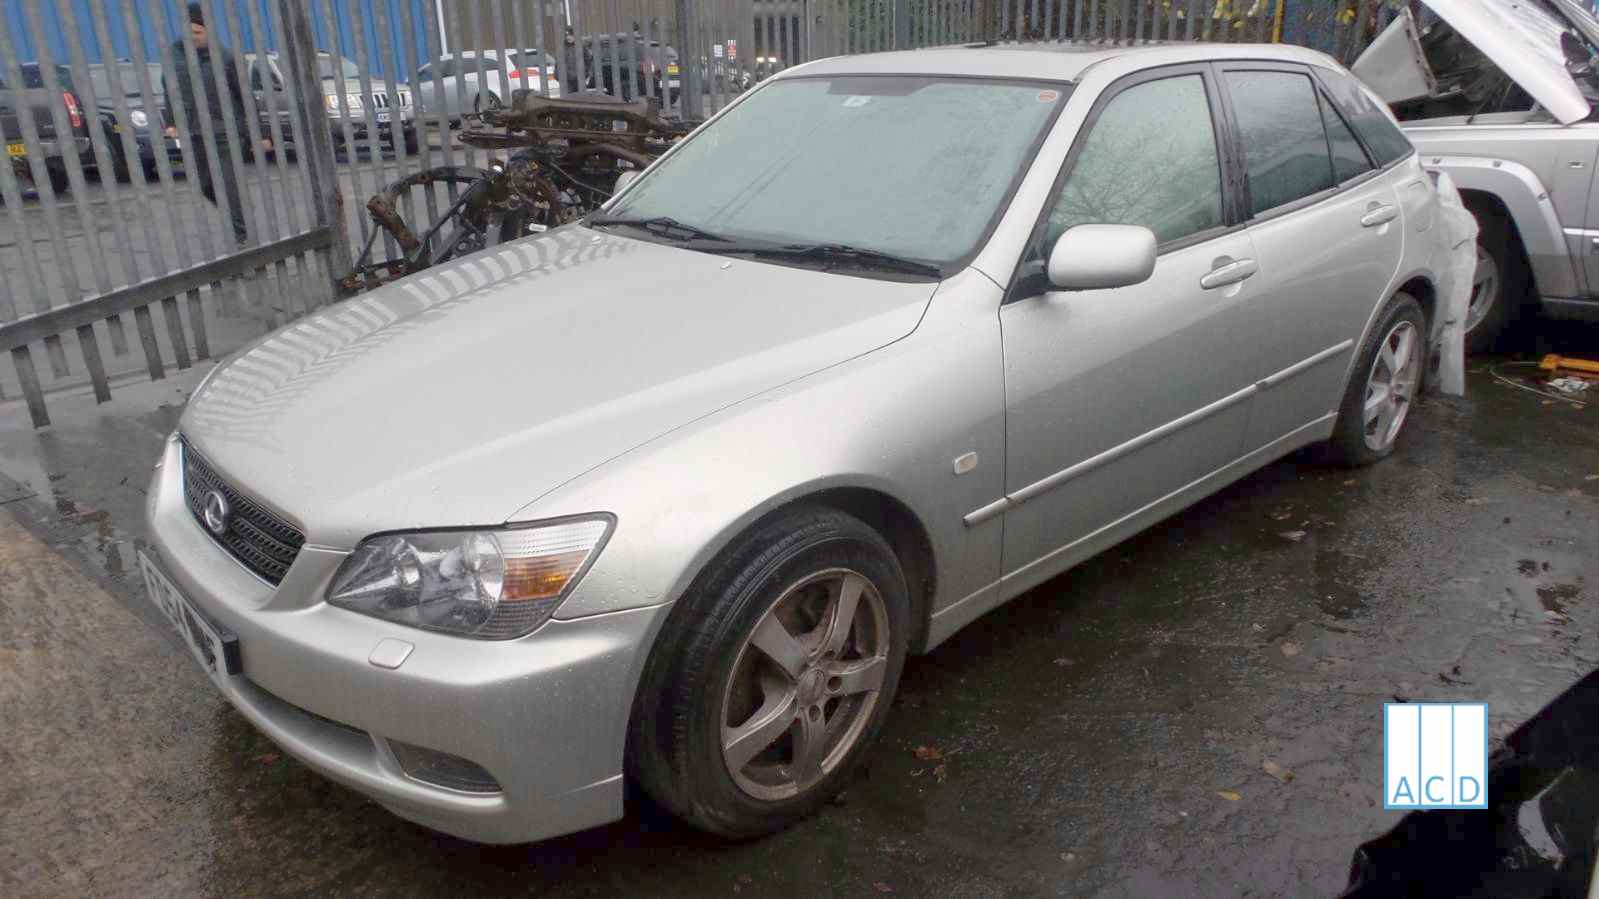 Lexus IS200 Sport 2.0L Petrol 6-Speed manual 2004 #2672 01